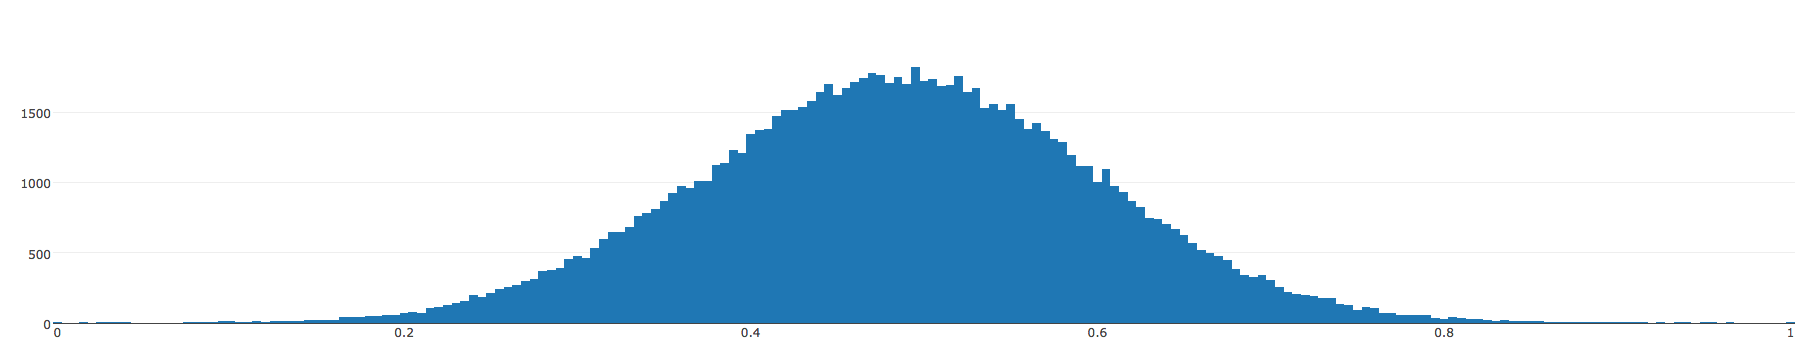 Gaussian random distribution - normalized